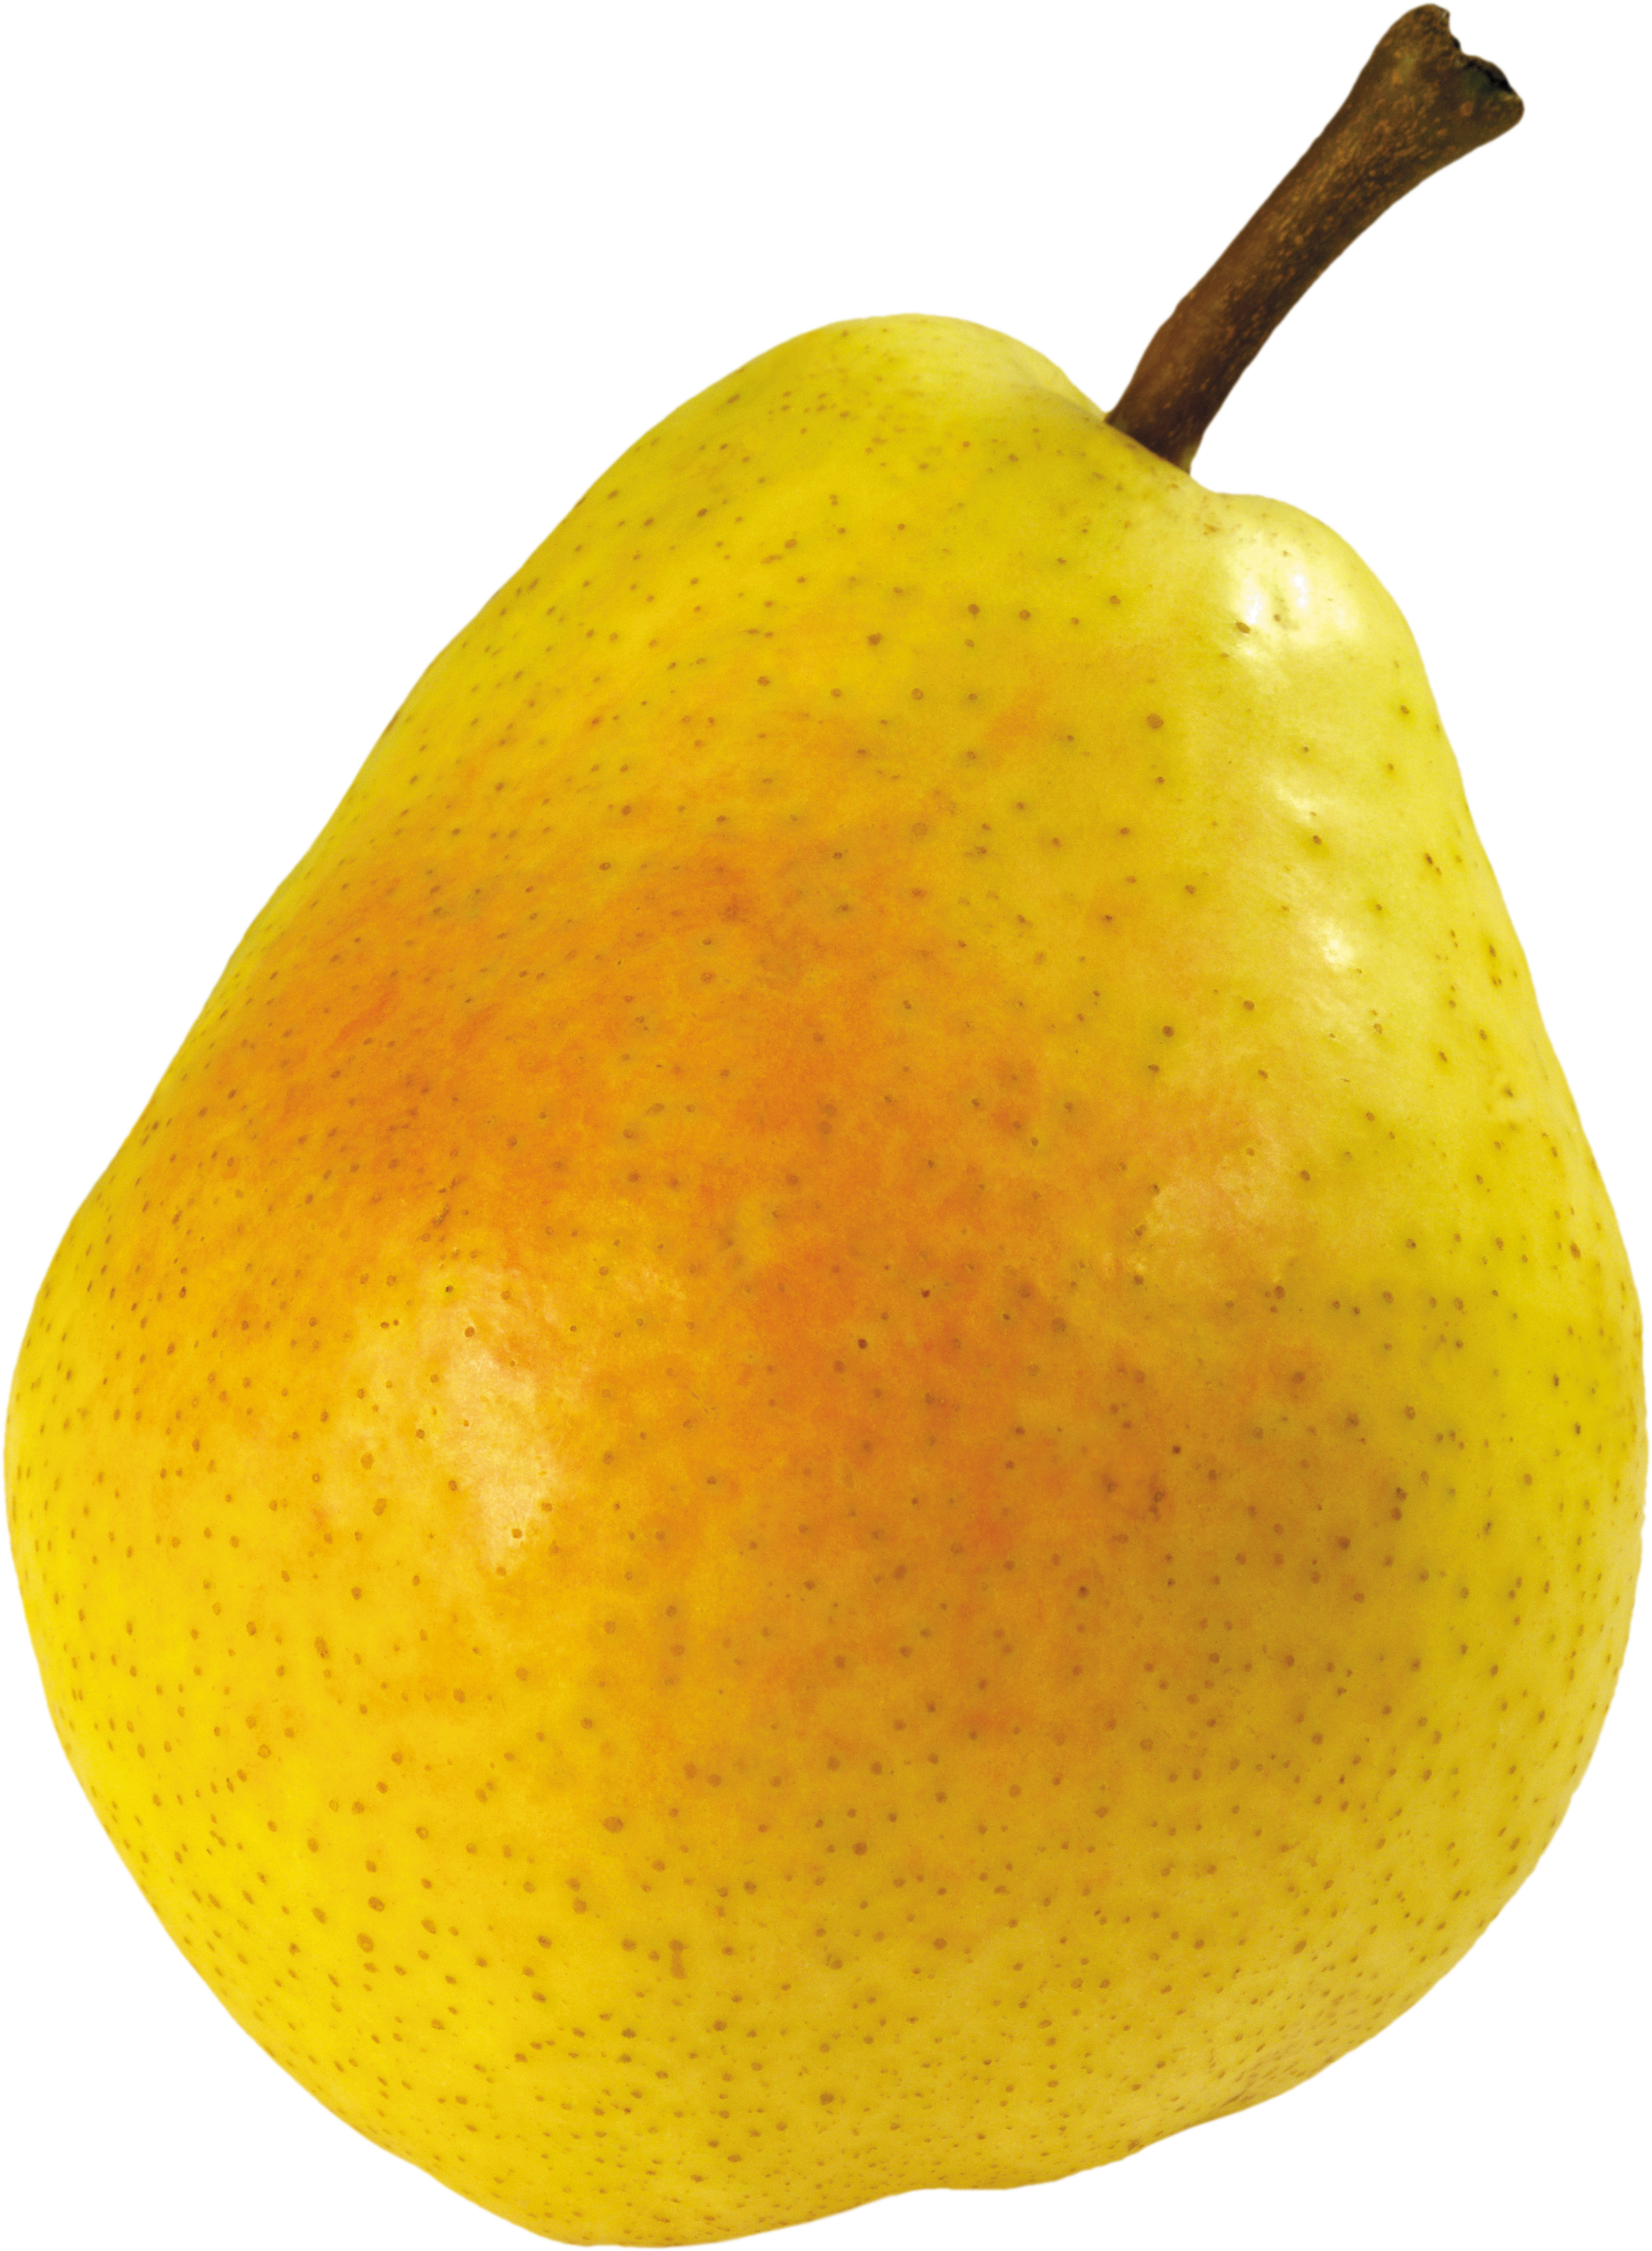 Pear clipart transparent background. Ten isolated stock photo